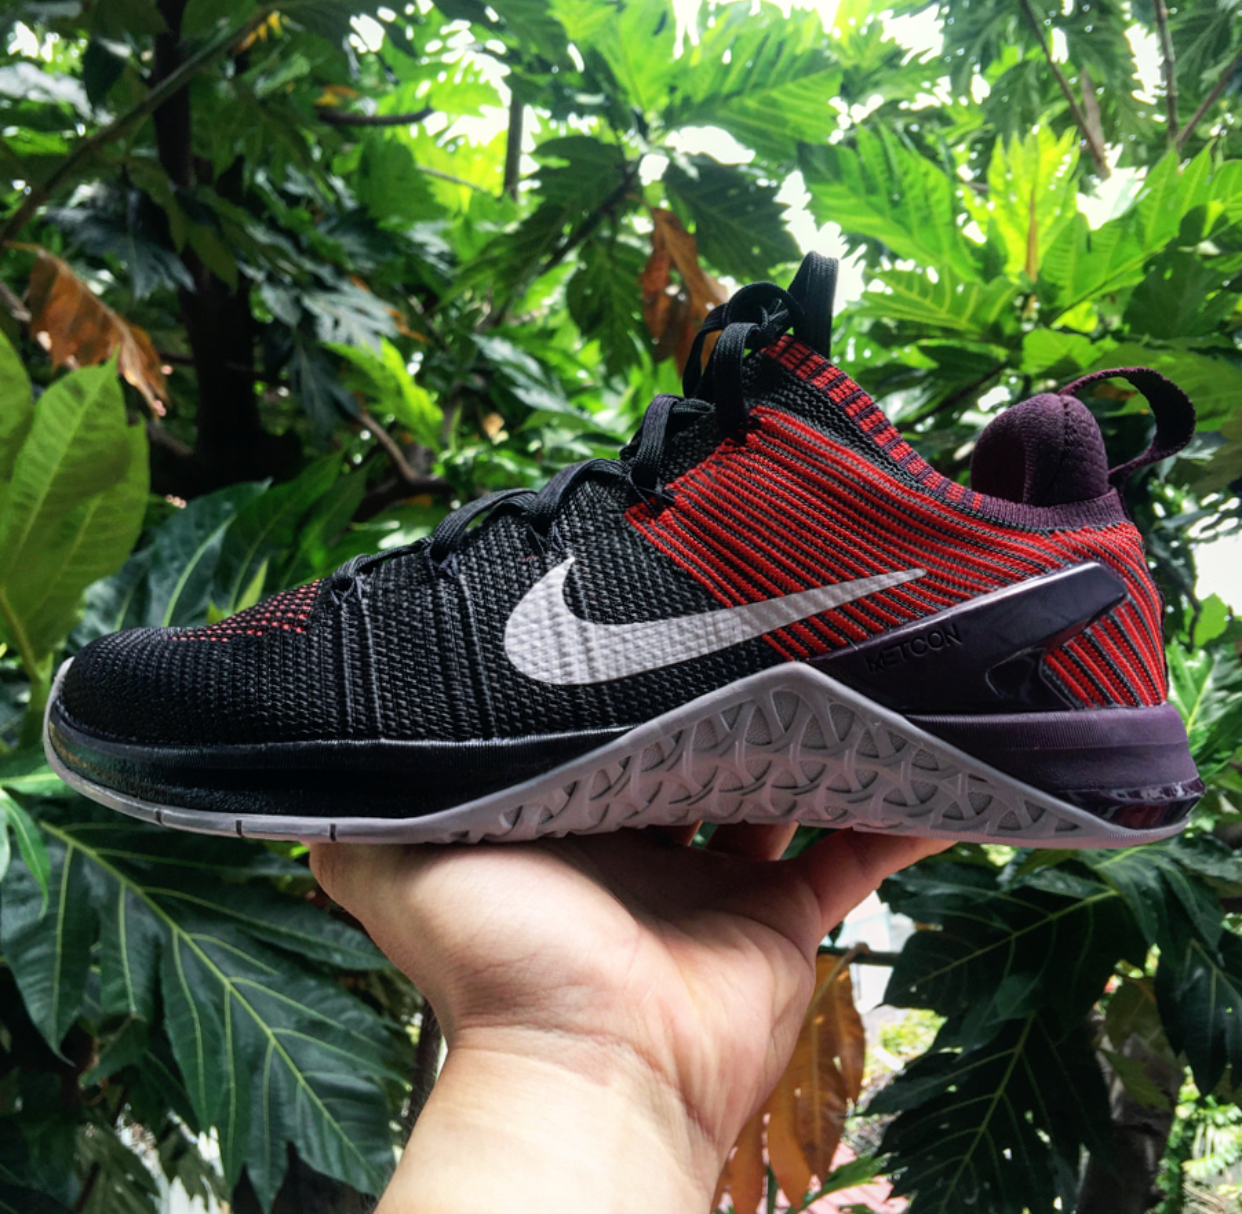 NIKE METCON DSX FLYKNIT 2 AVAILABLE